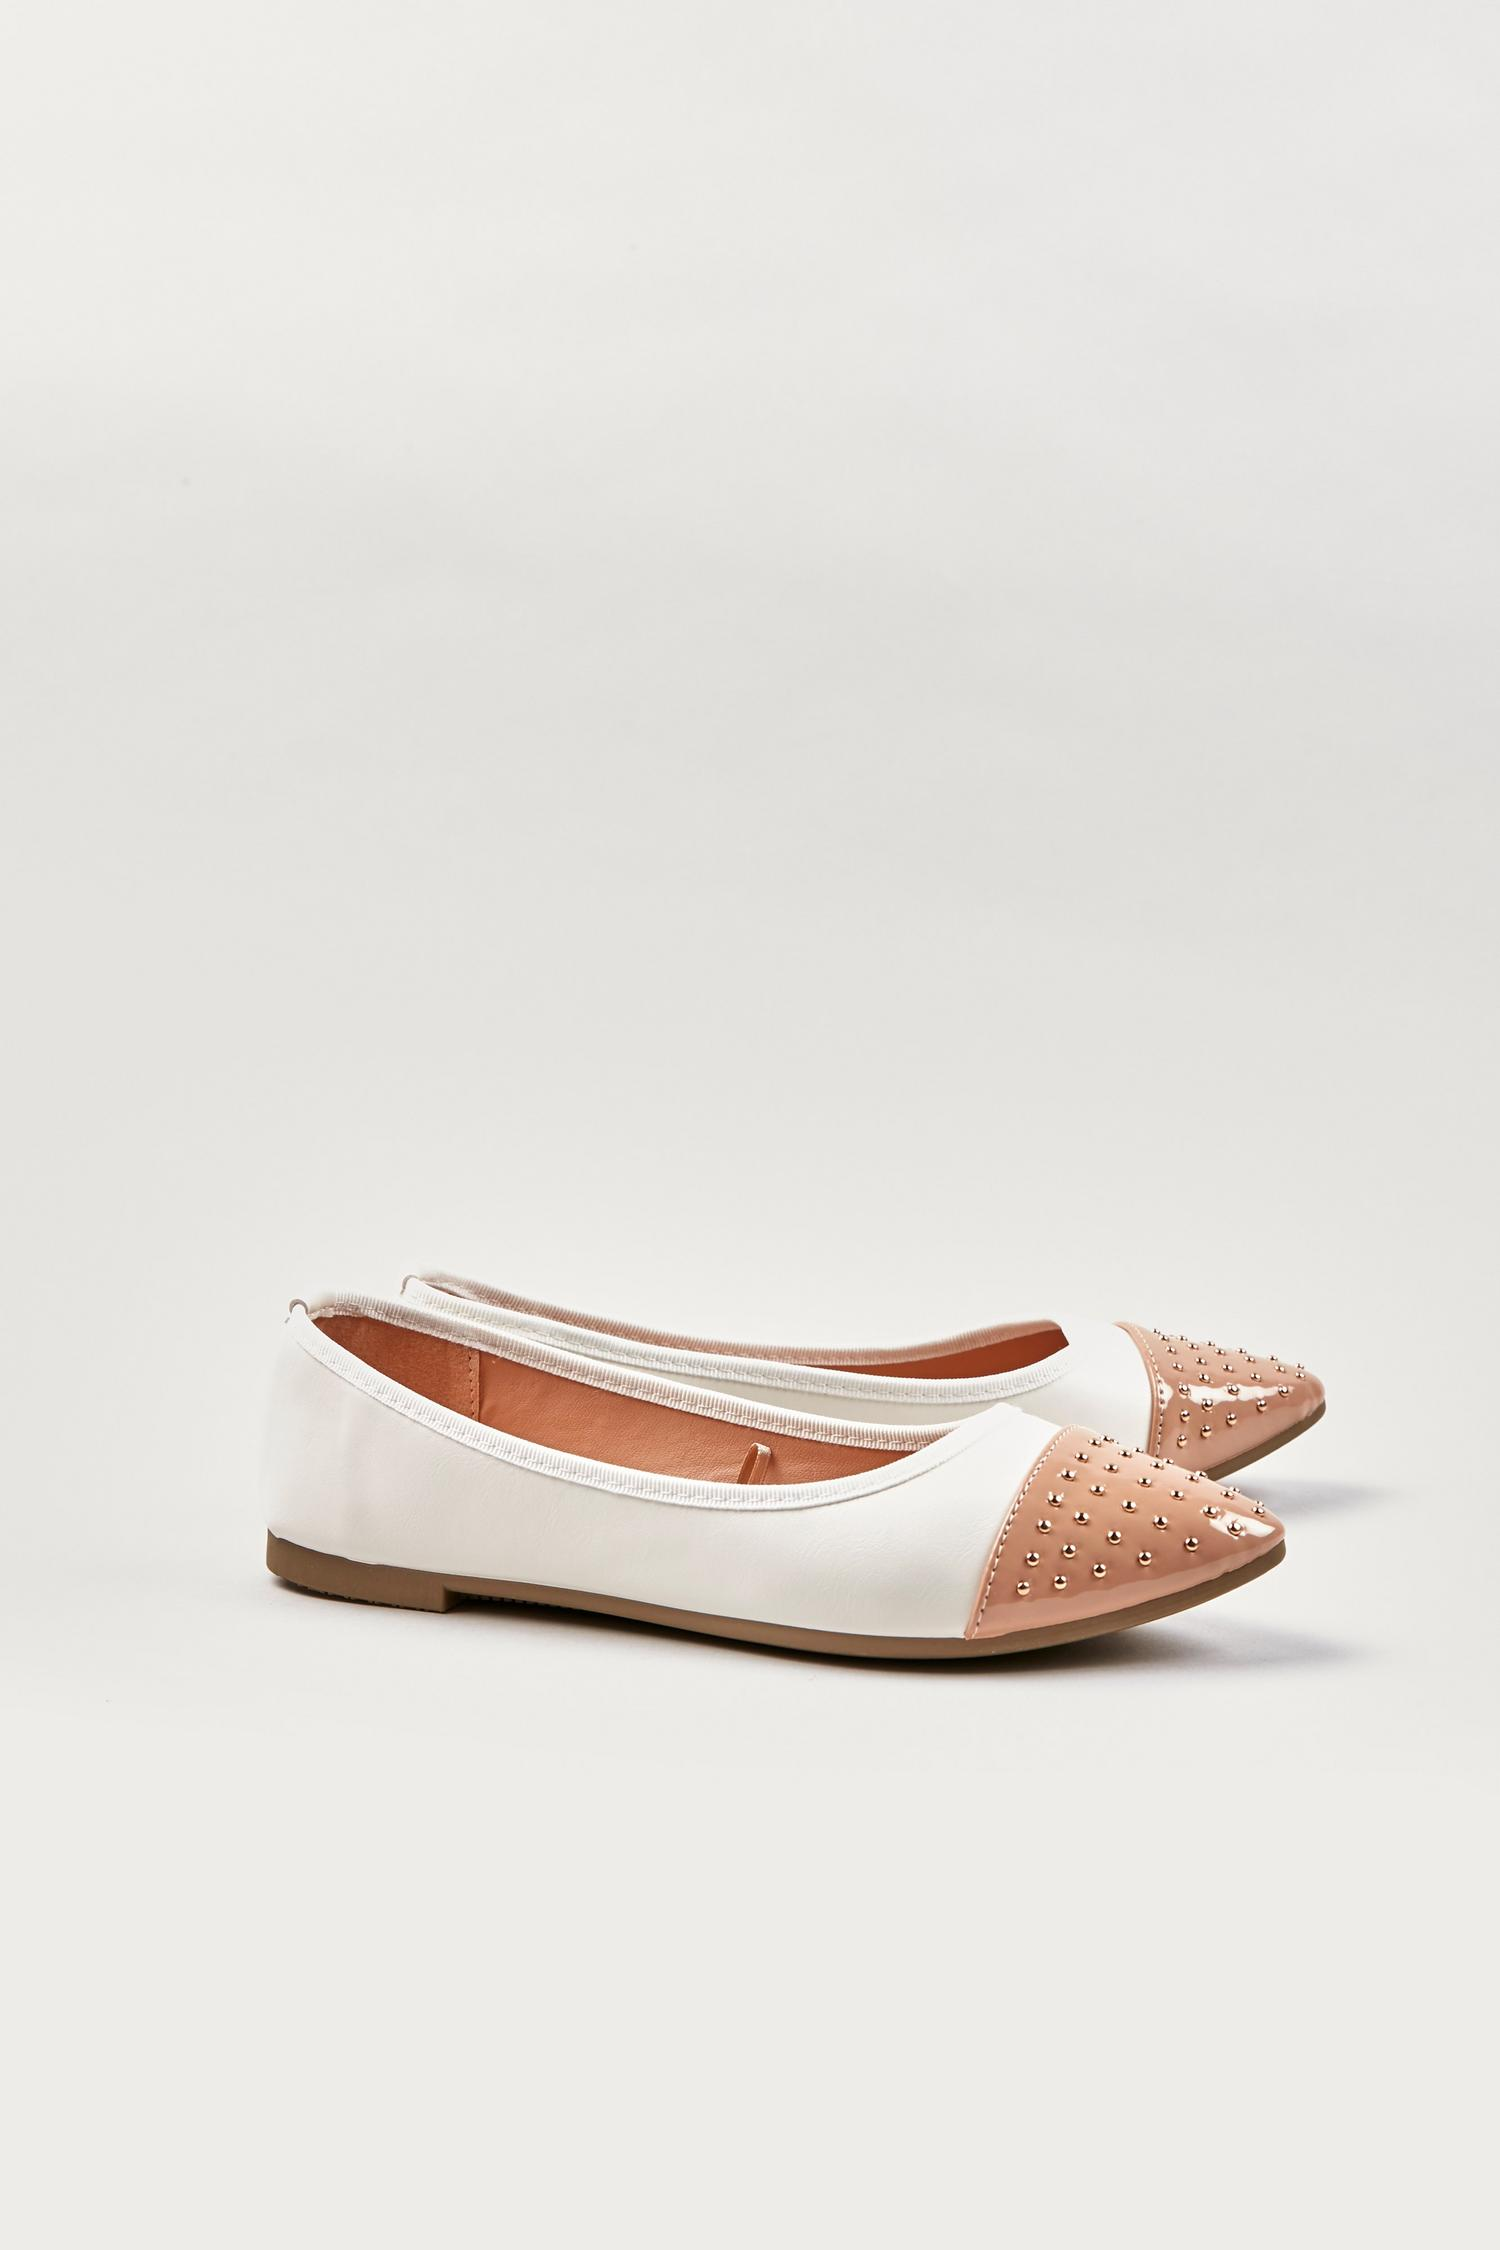 123 Cream Studded Pointed Ballet Pump image number 4